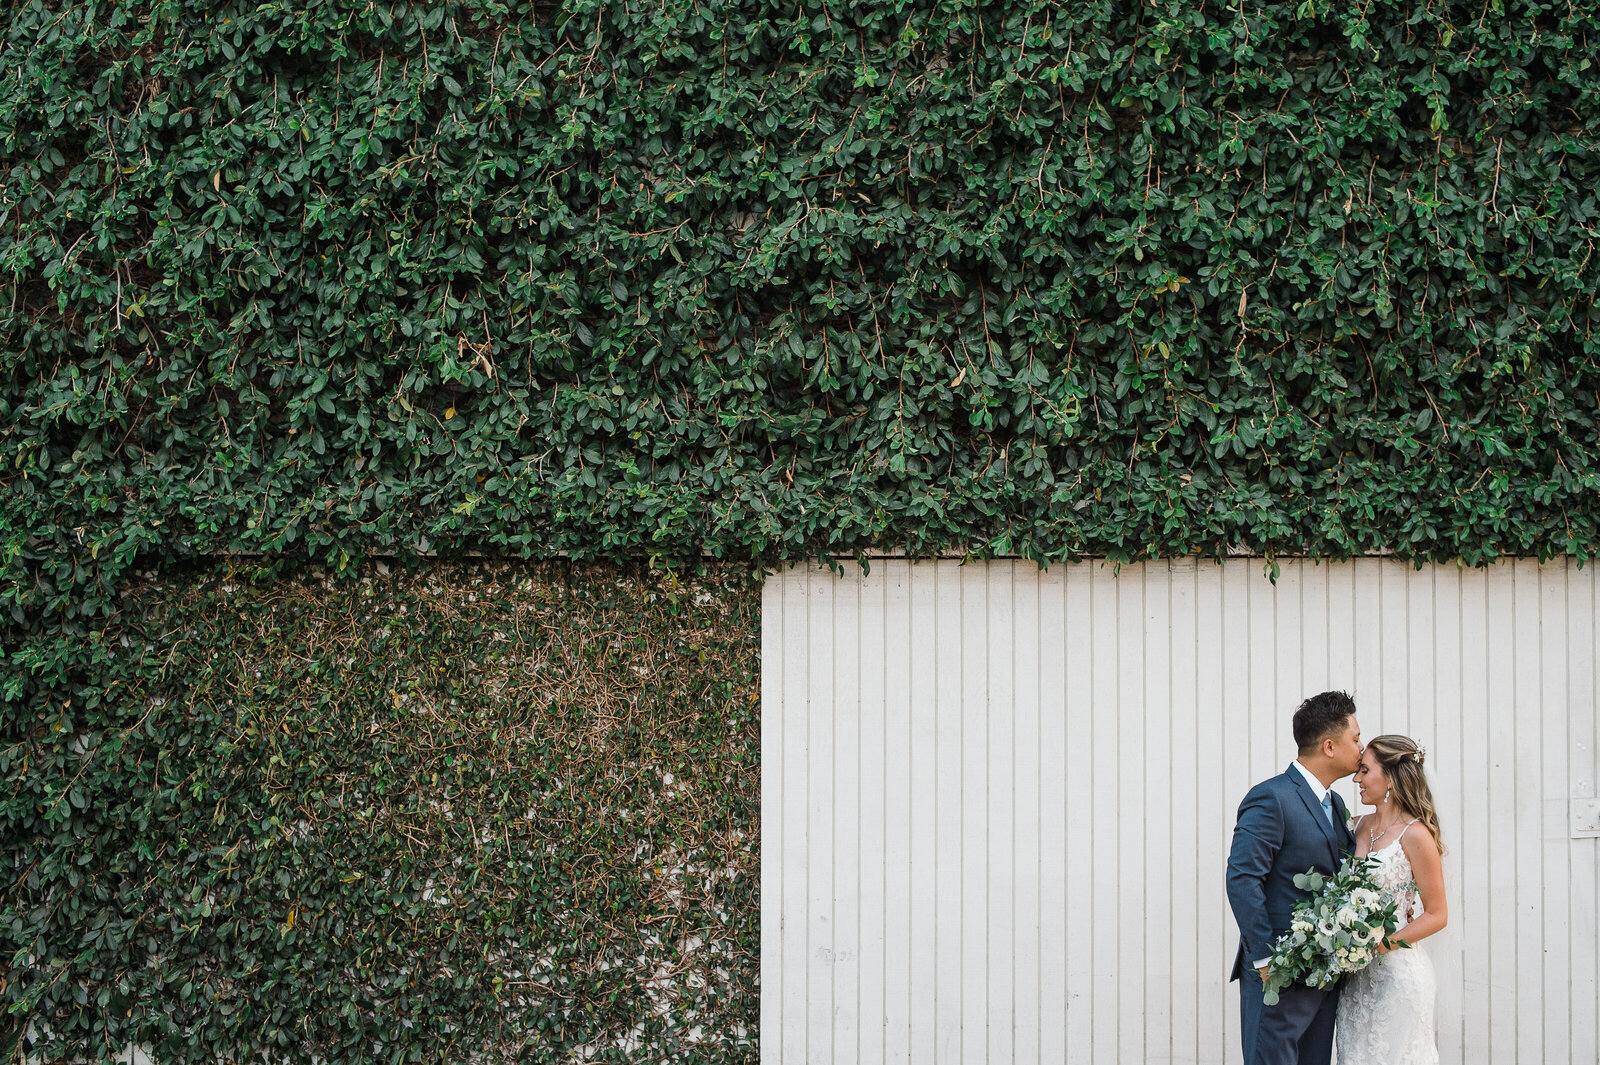 Our cascading Ivy creates a textured and elegant background in the hart of urban Midtown.